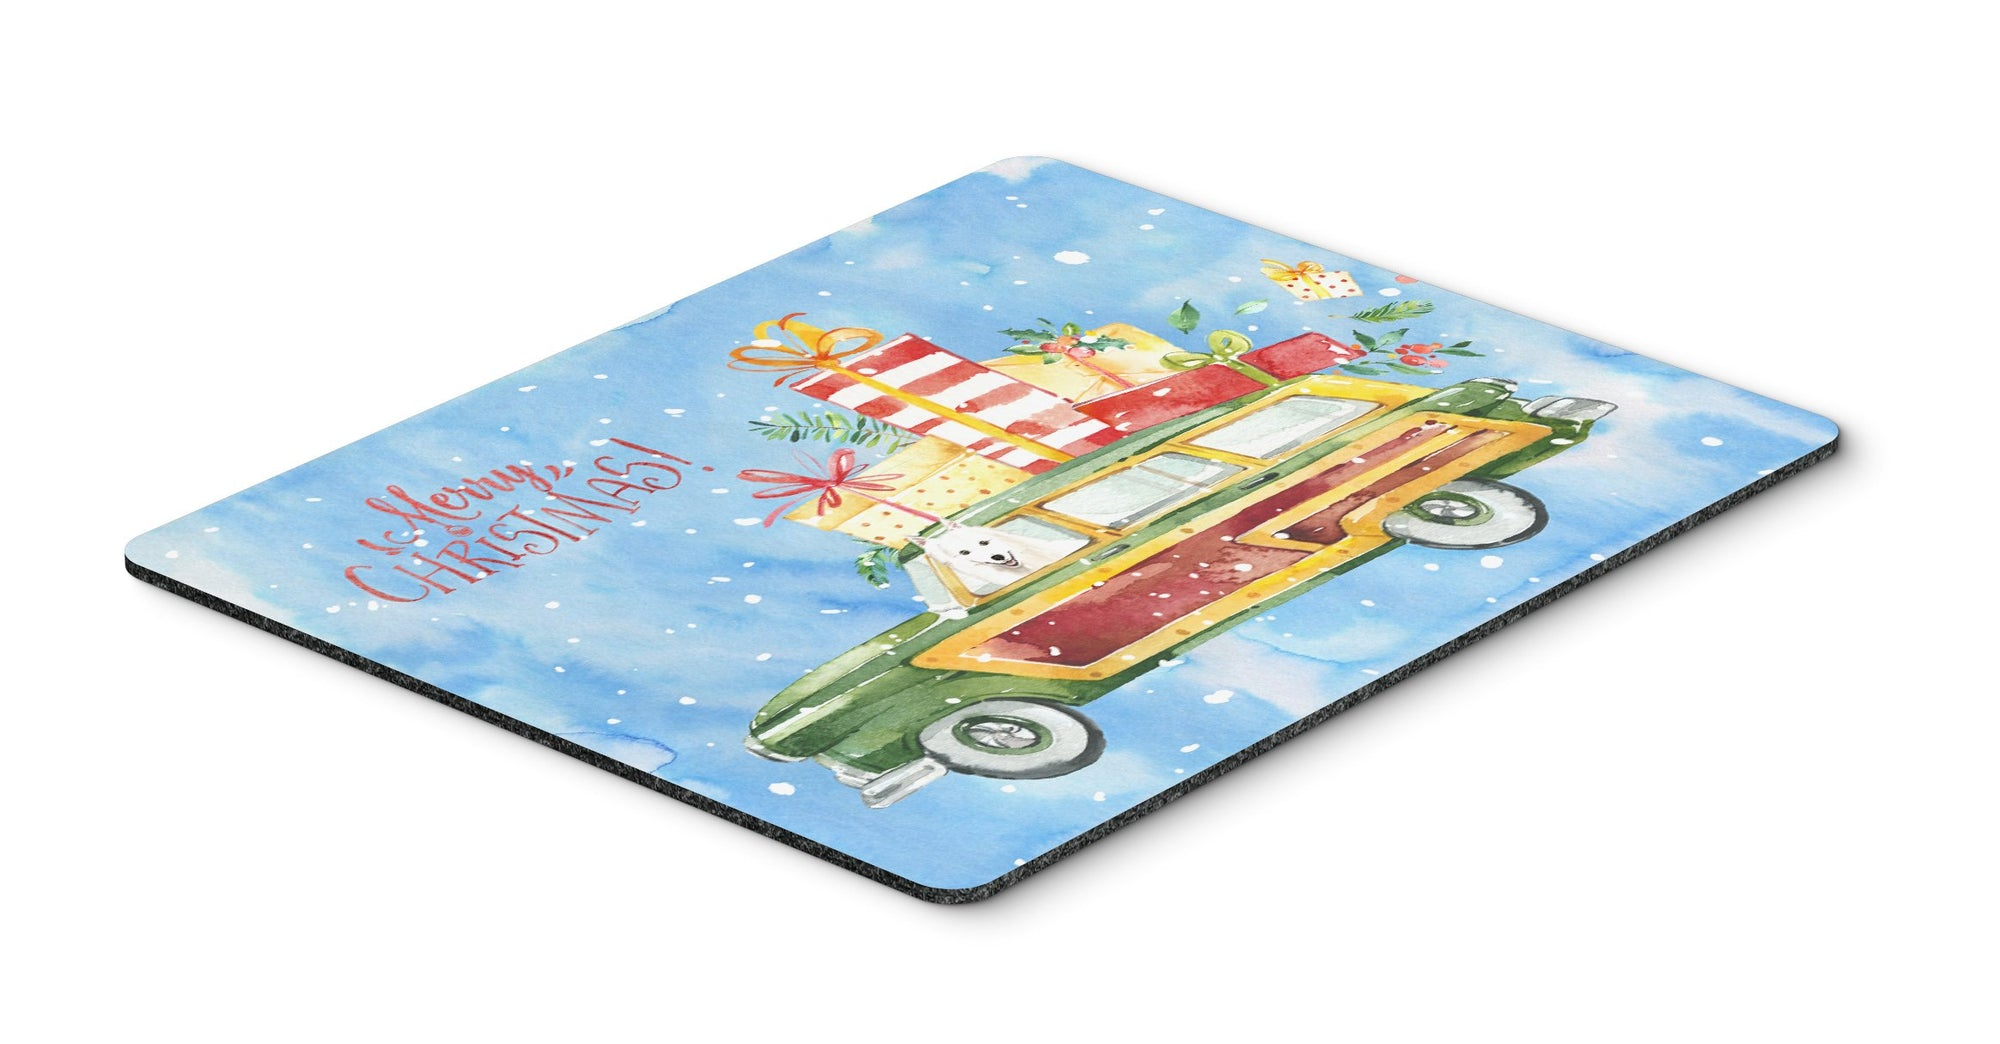 Merry Christmas Japanese Spitz Mouse Pad, Hot Pad or Trivet CK2410MP by Caroline's Treasures